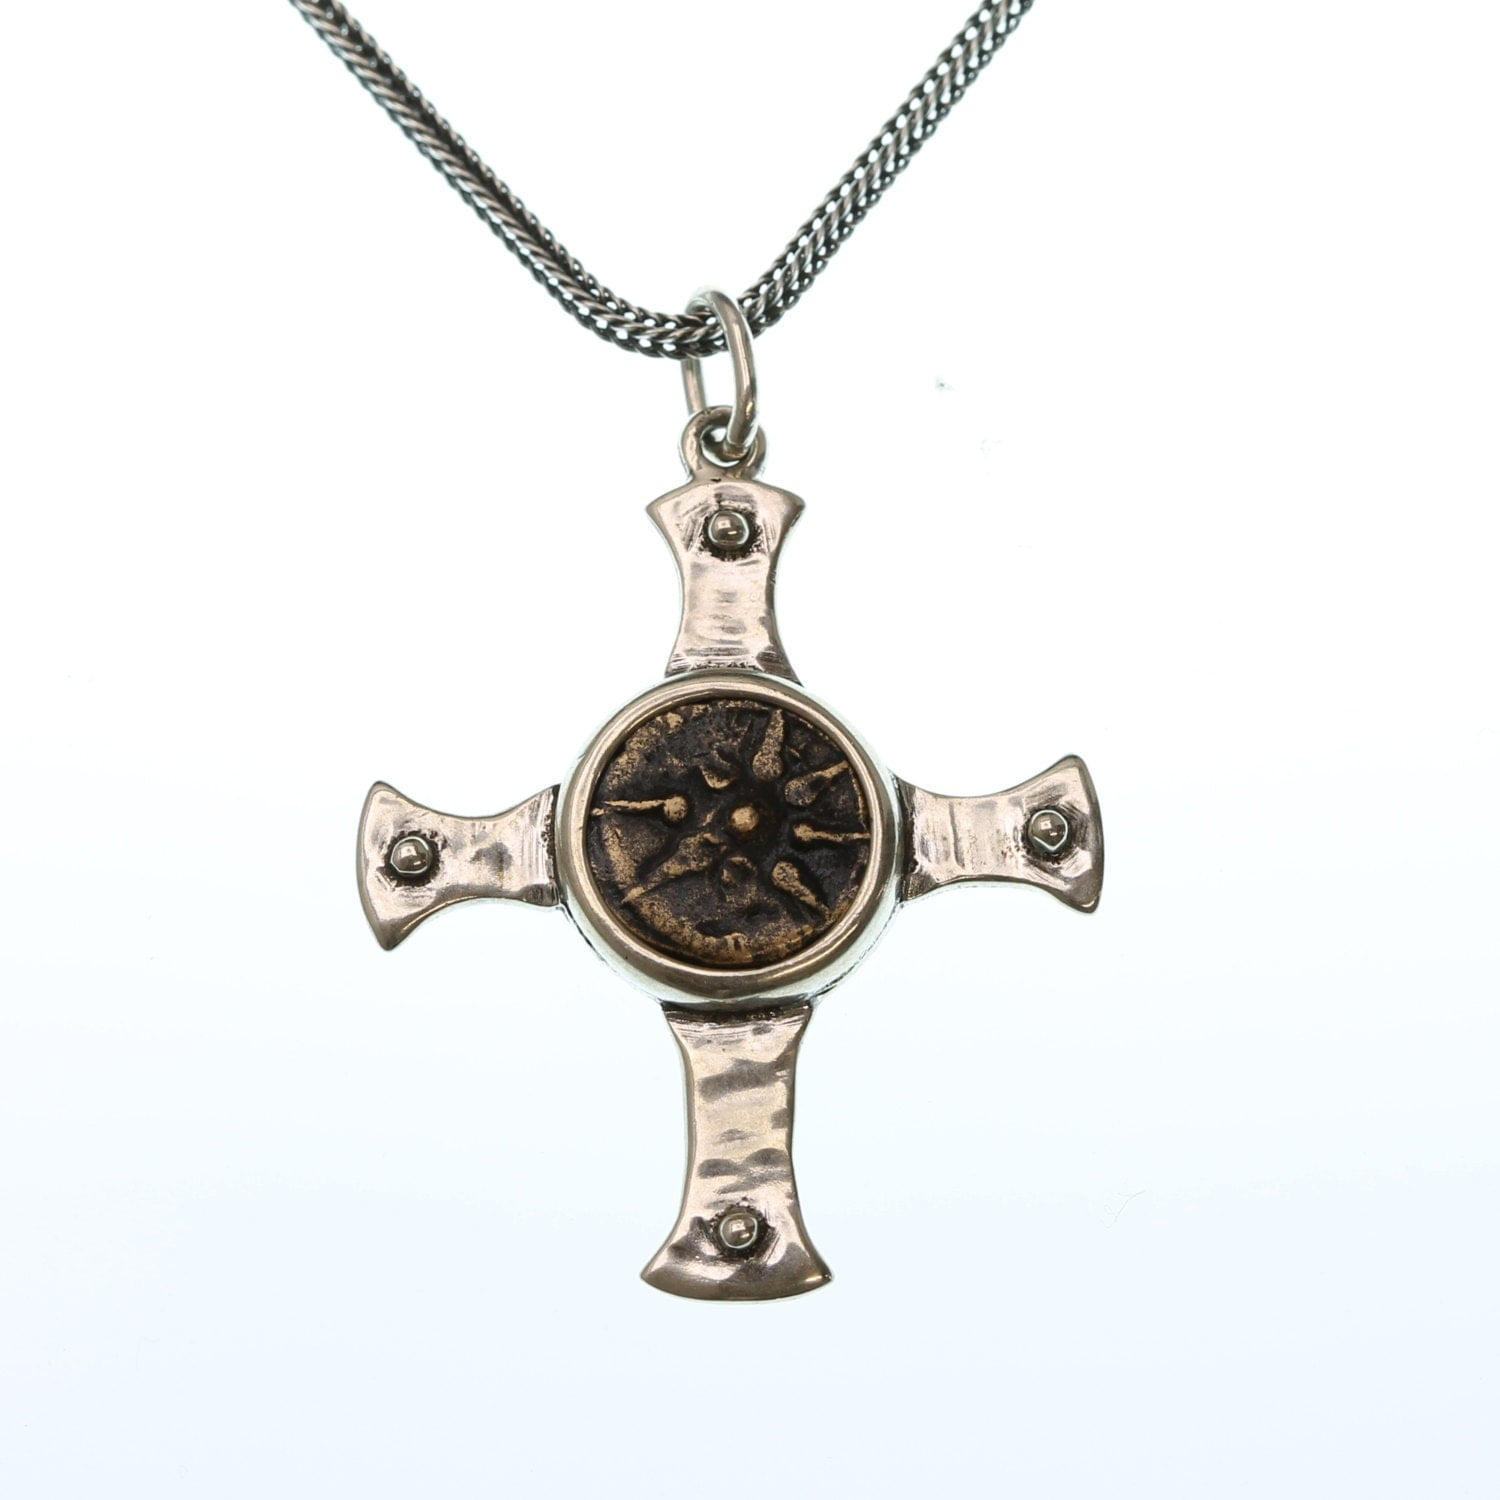 ancient coin necklace cross pendant necklace sterling silver